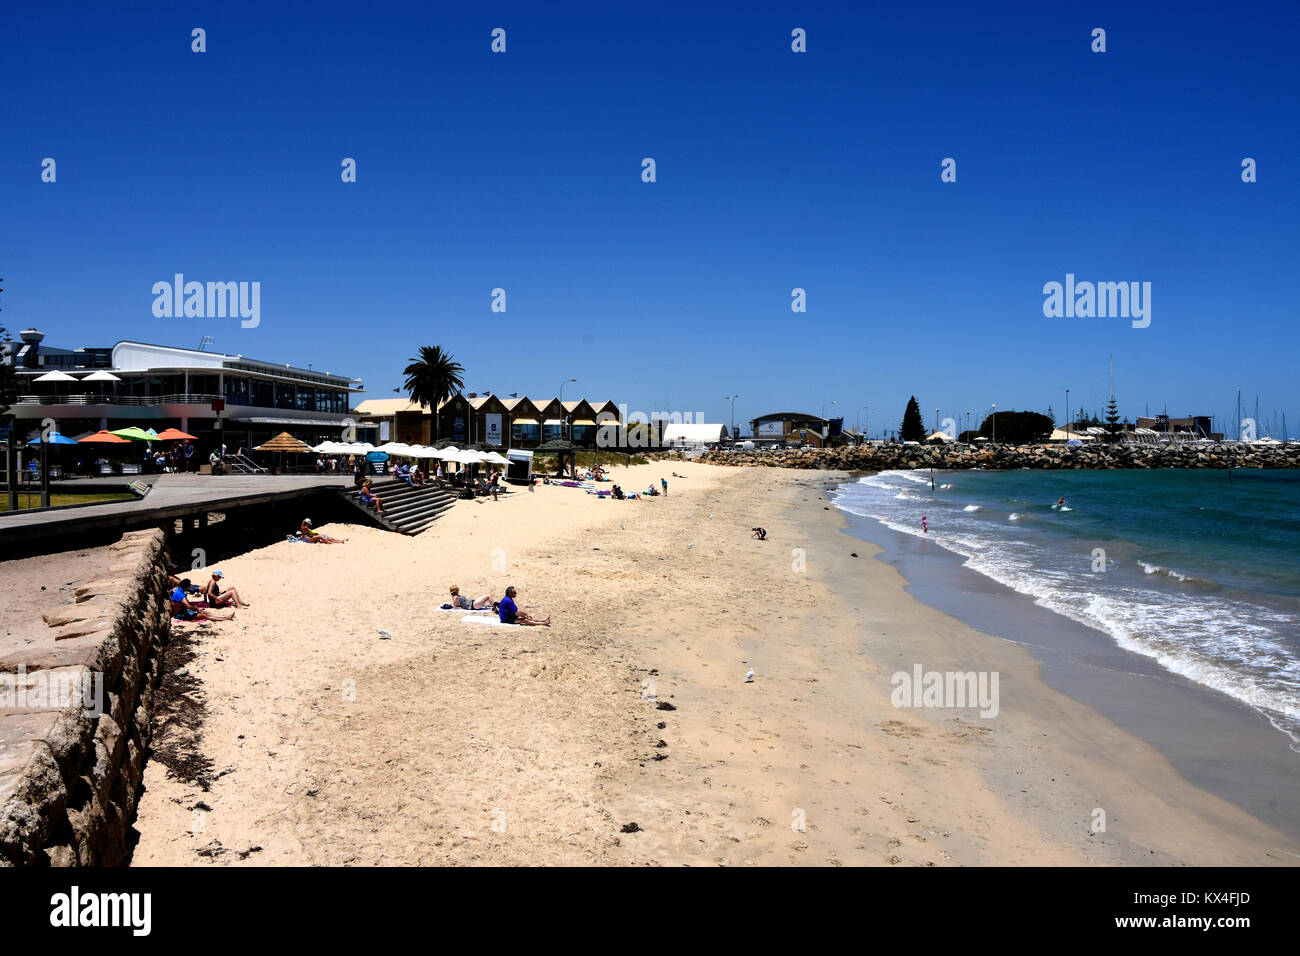 Freemantle Beach with water and sand - Stock Image